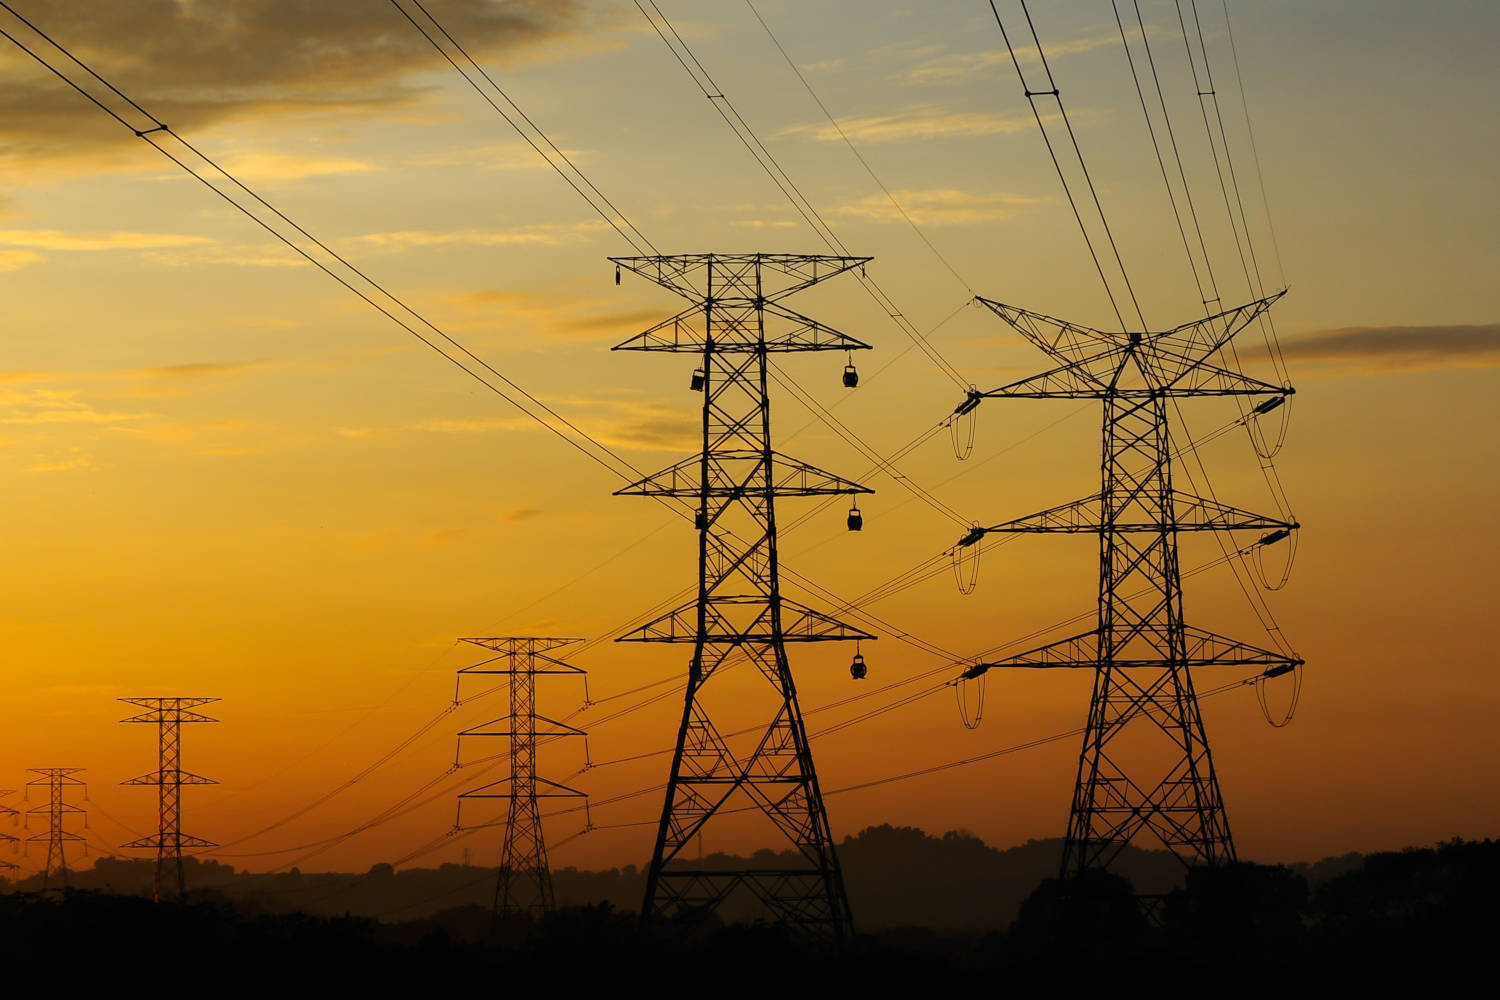 hight resolution of electrical power lines in the sunset